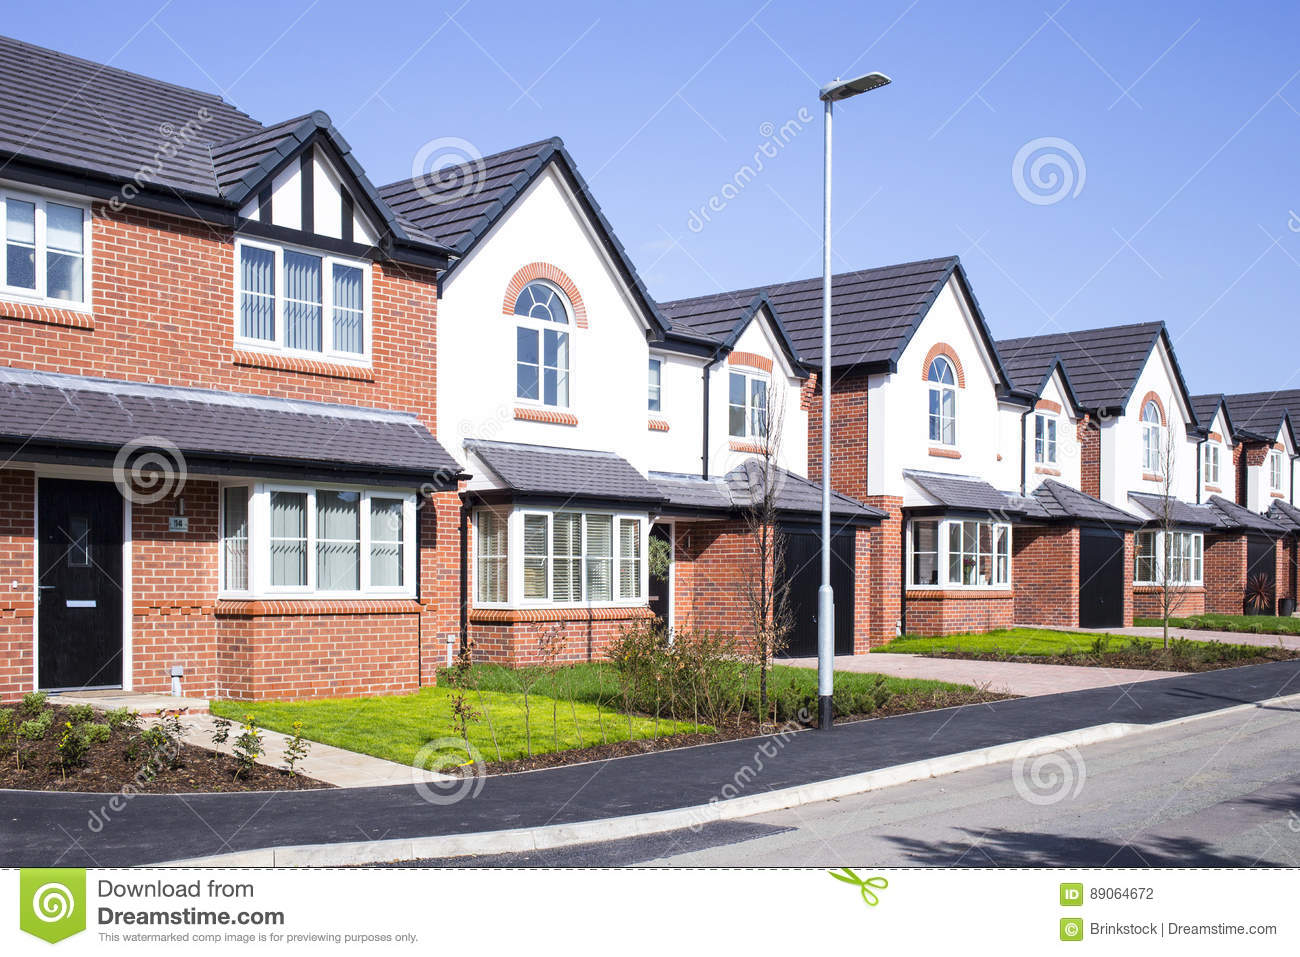 Download New build houses UK stock photo. Image of house, terraced - 89064672